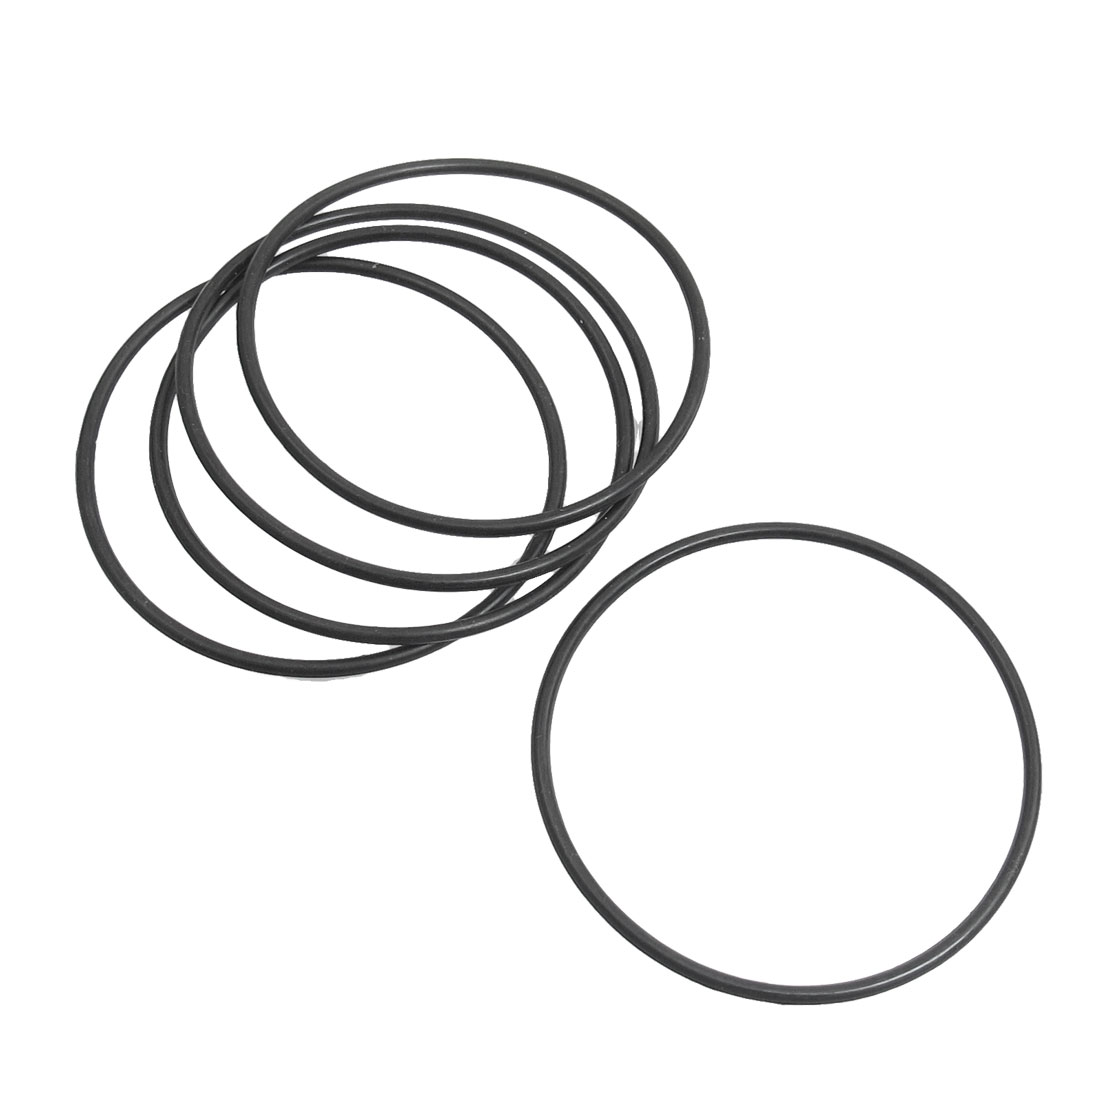 5 Pcs Rubber O Ring Oil Seal Gaskets for Makita HM0810 Electric Pick Gun Gear Box Cylinder